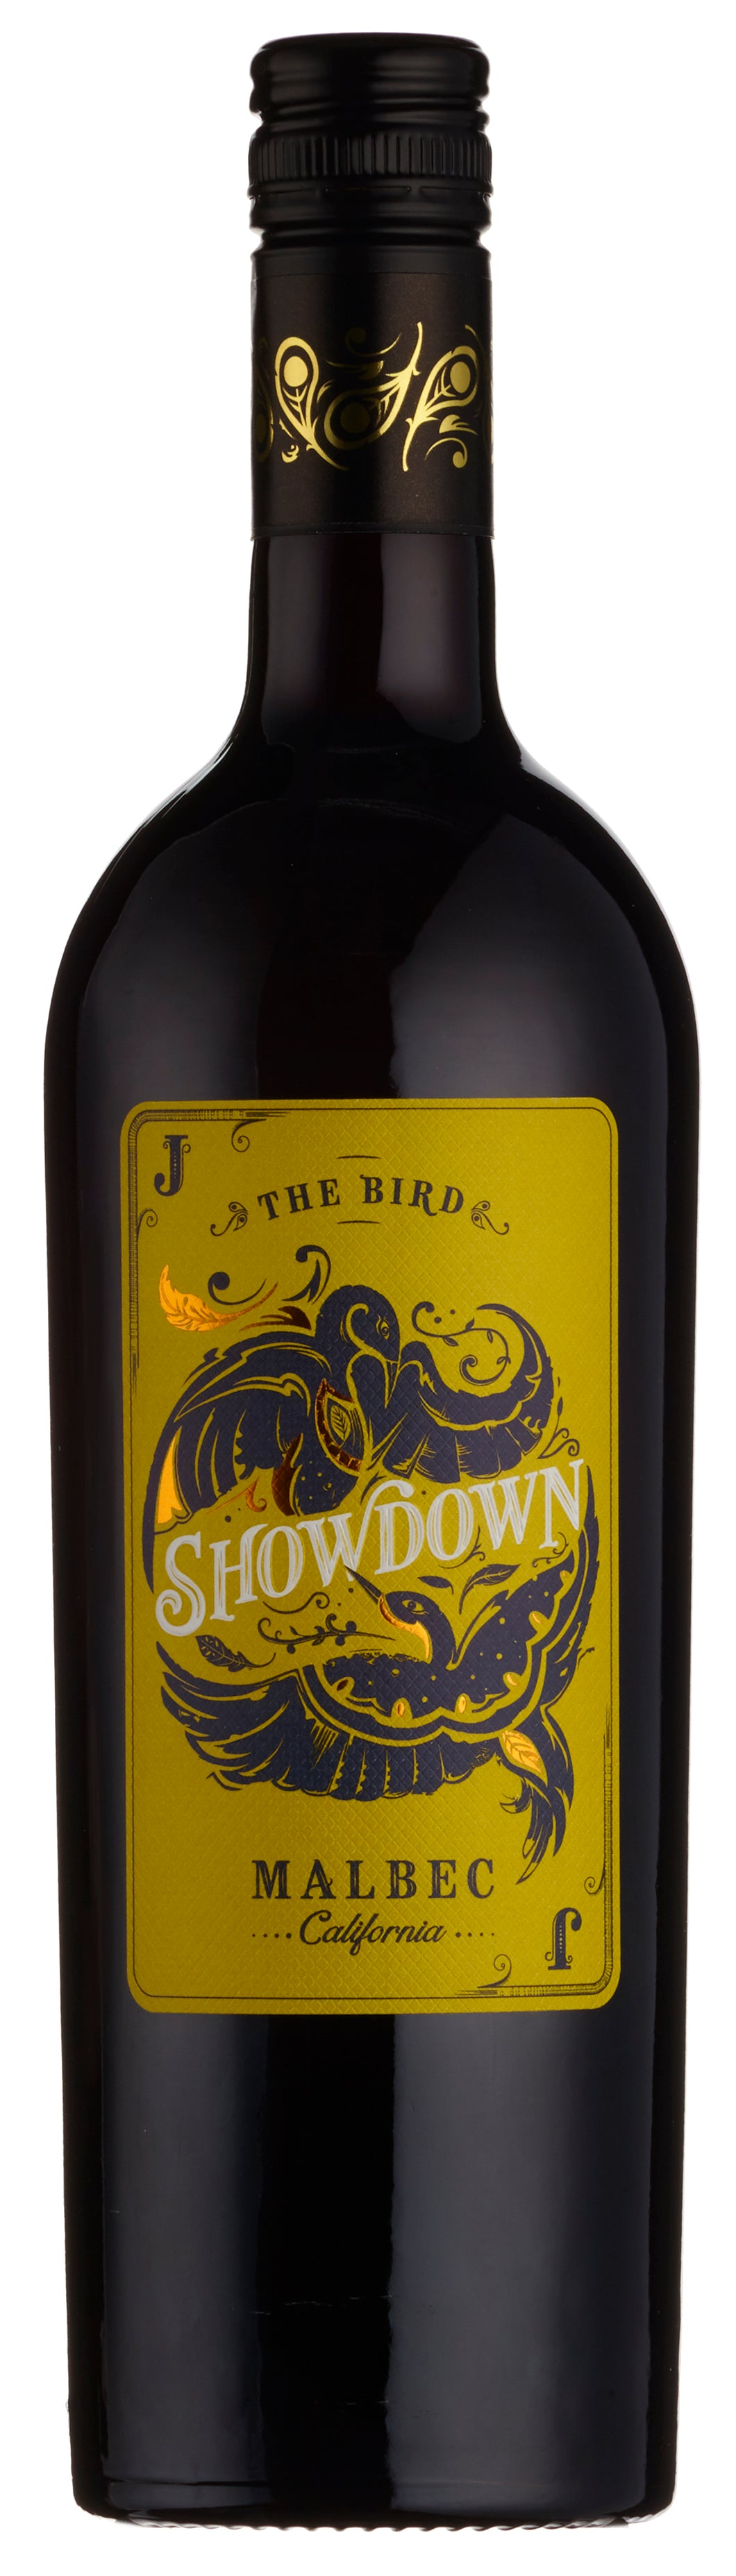 Showdown, 'The Bird' Malbec